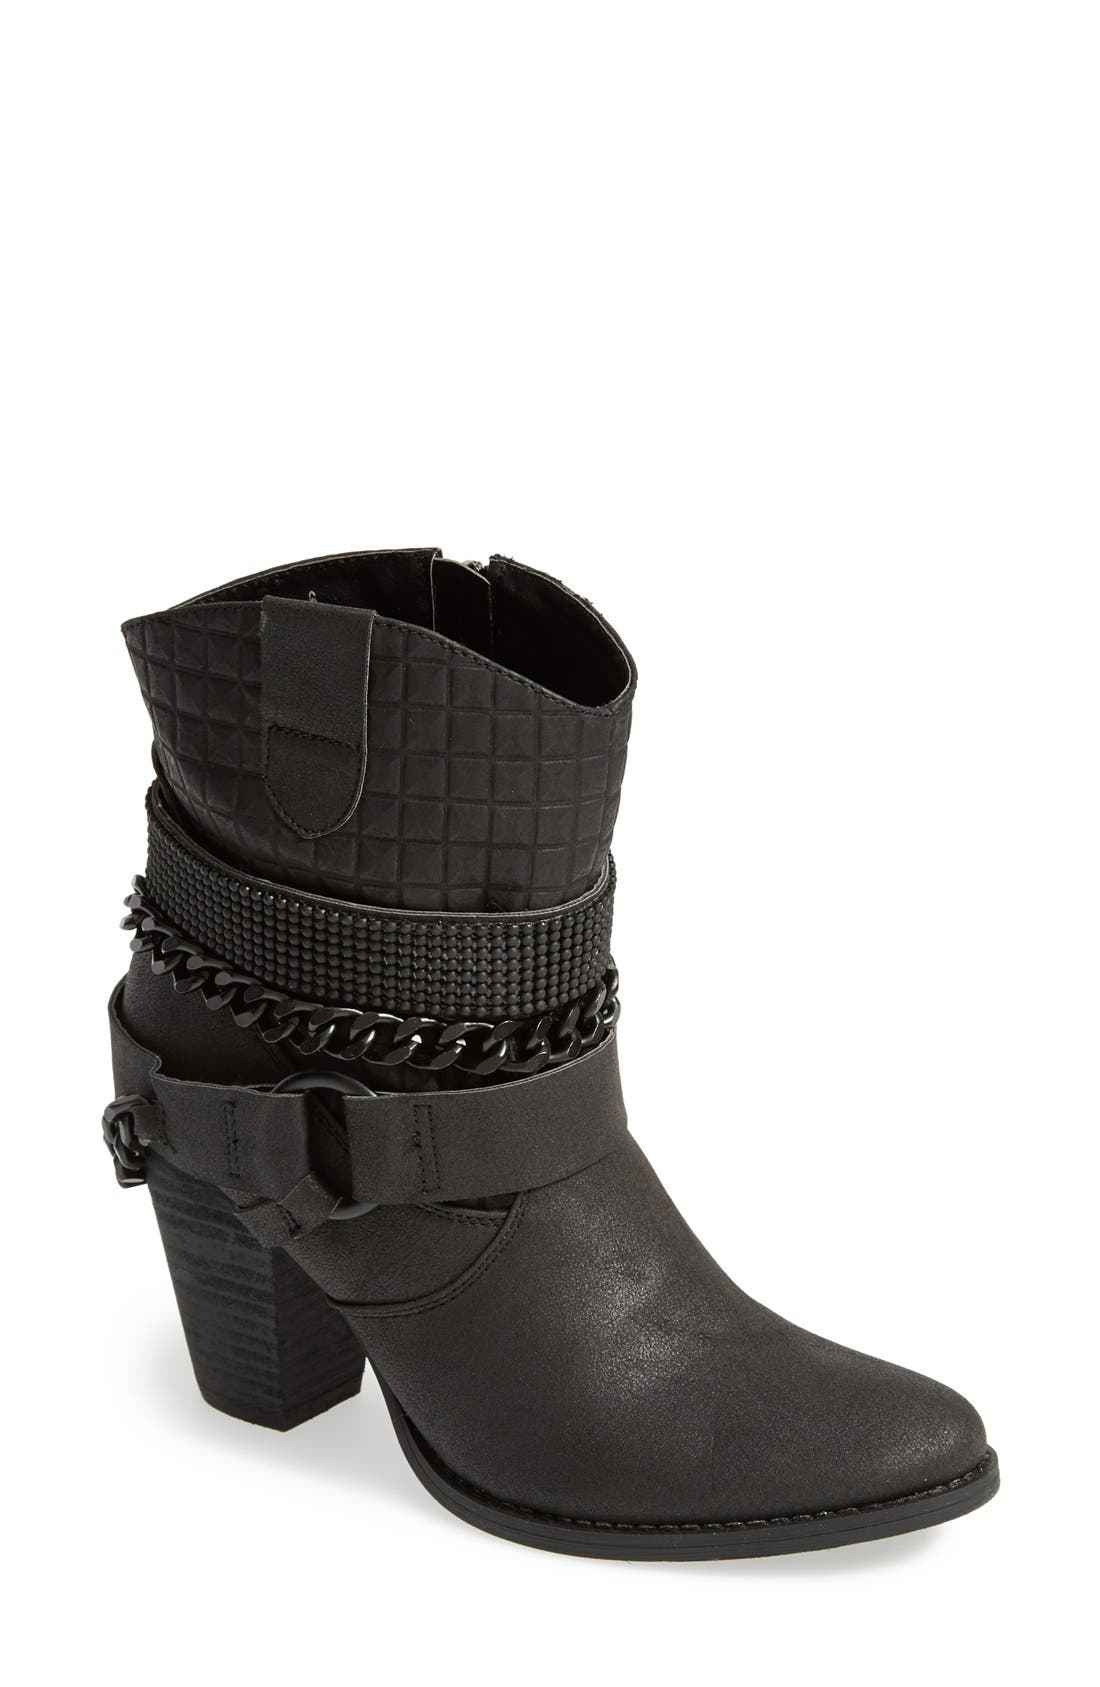 Alternate Image 1 Selected - Very Volatile 'Amplify' Western Boot (Women)